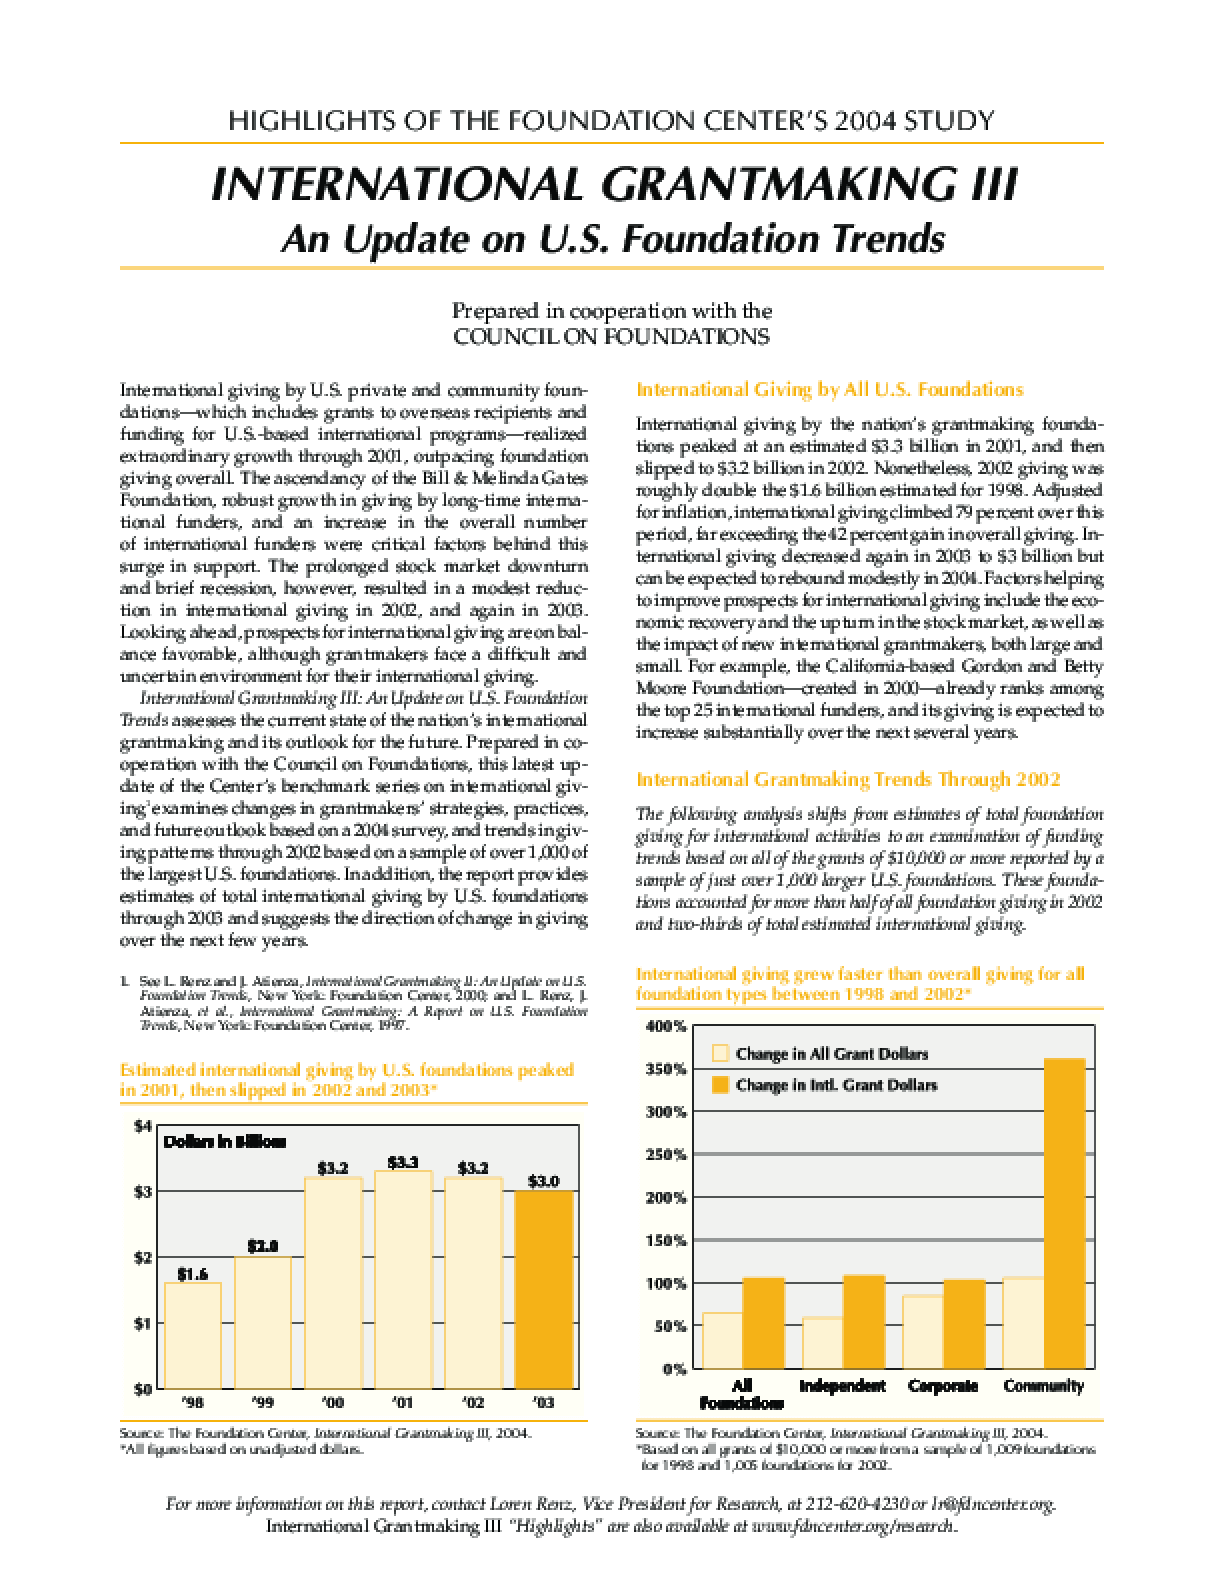 Highlights of the Foundation Center's 2004 Study: International Grantmaking III - An Update on U.S. Foundation Trends